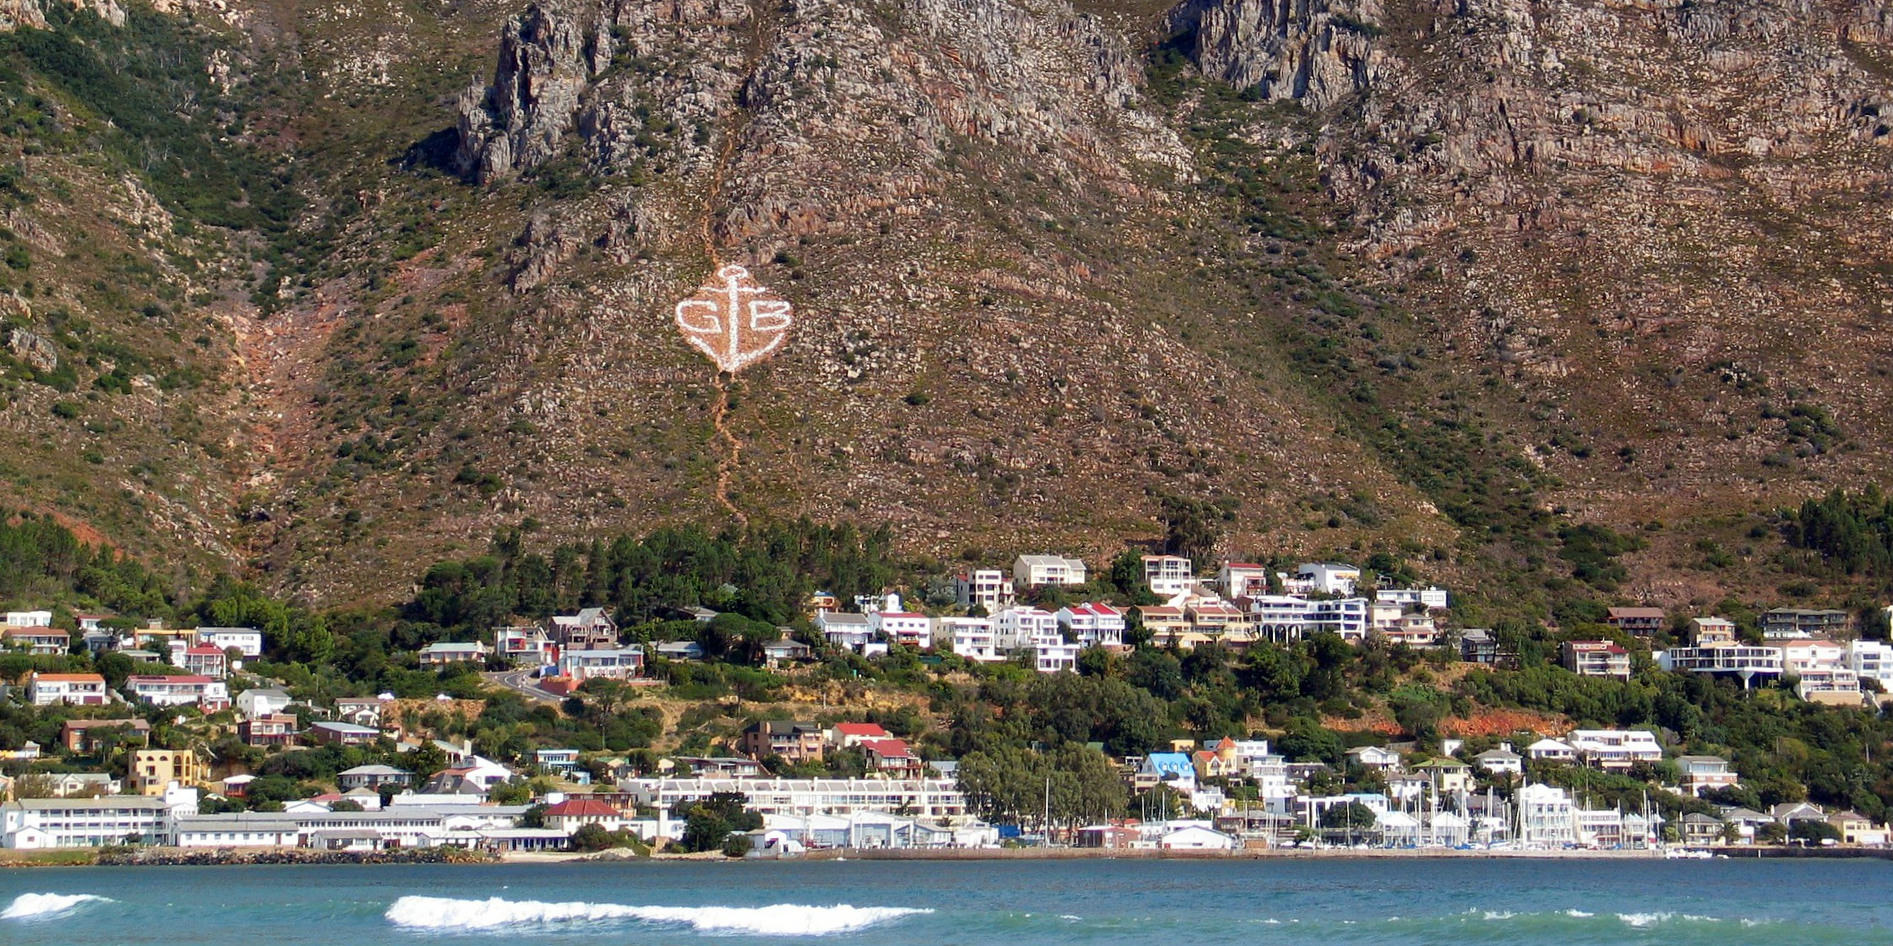 While volunteering in cape town, participants will be based in the seaside town of gordan's bay.